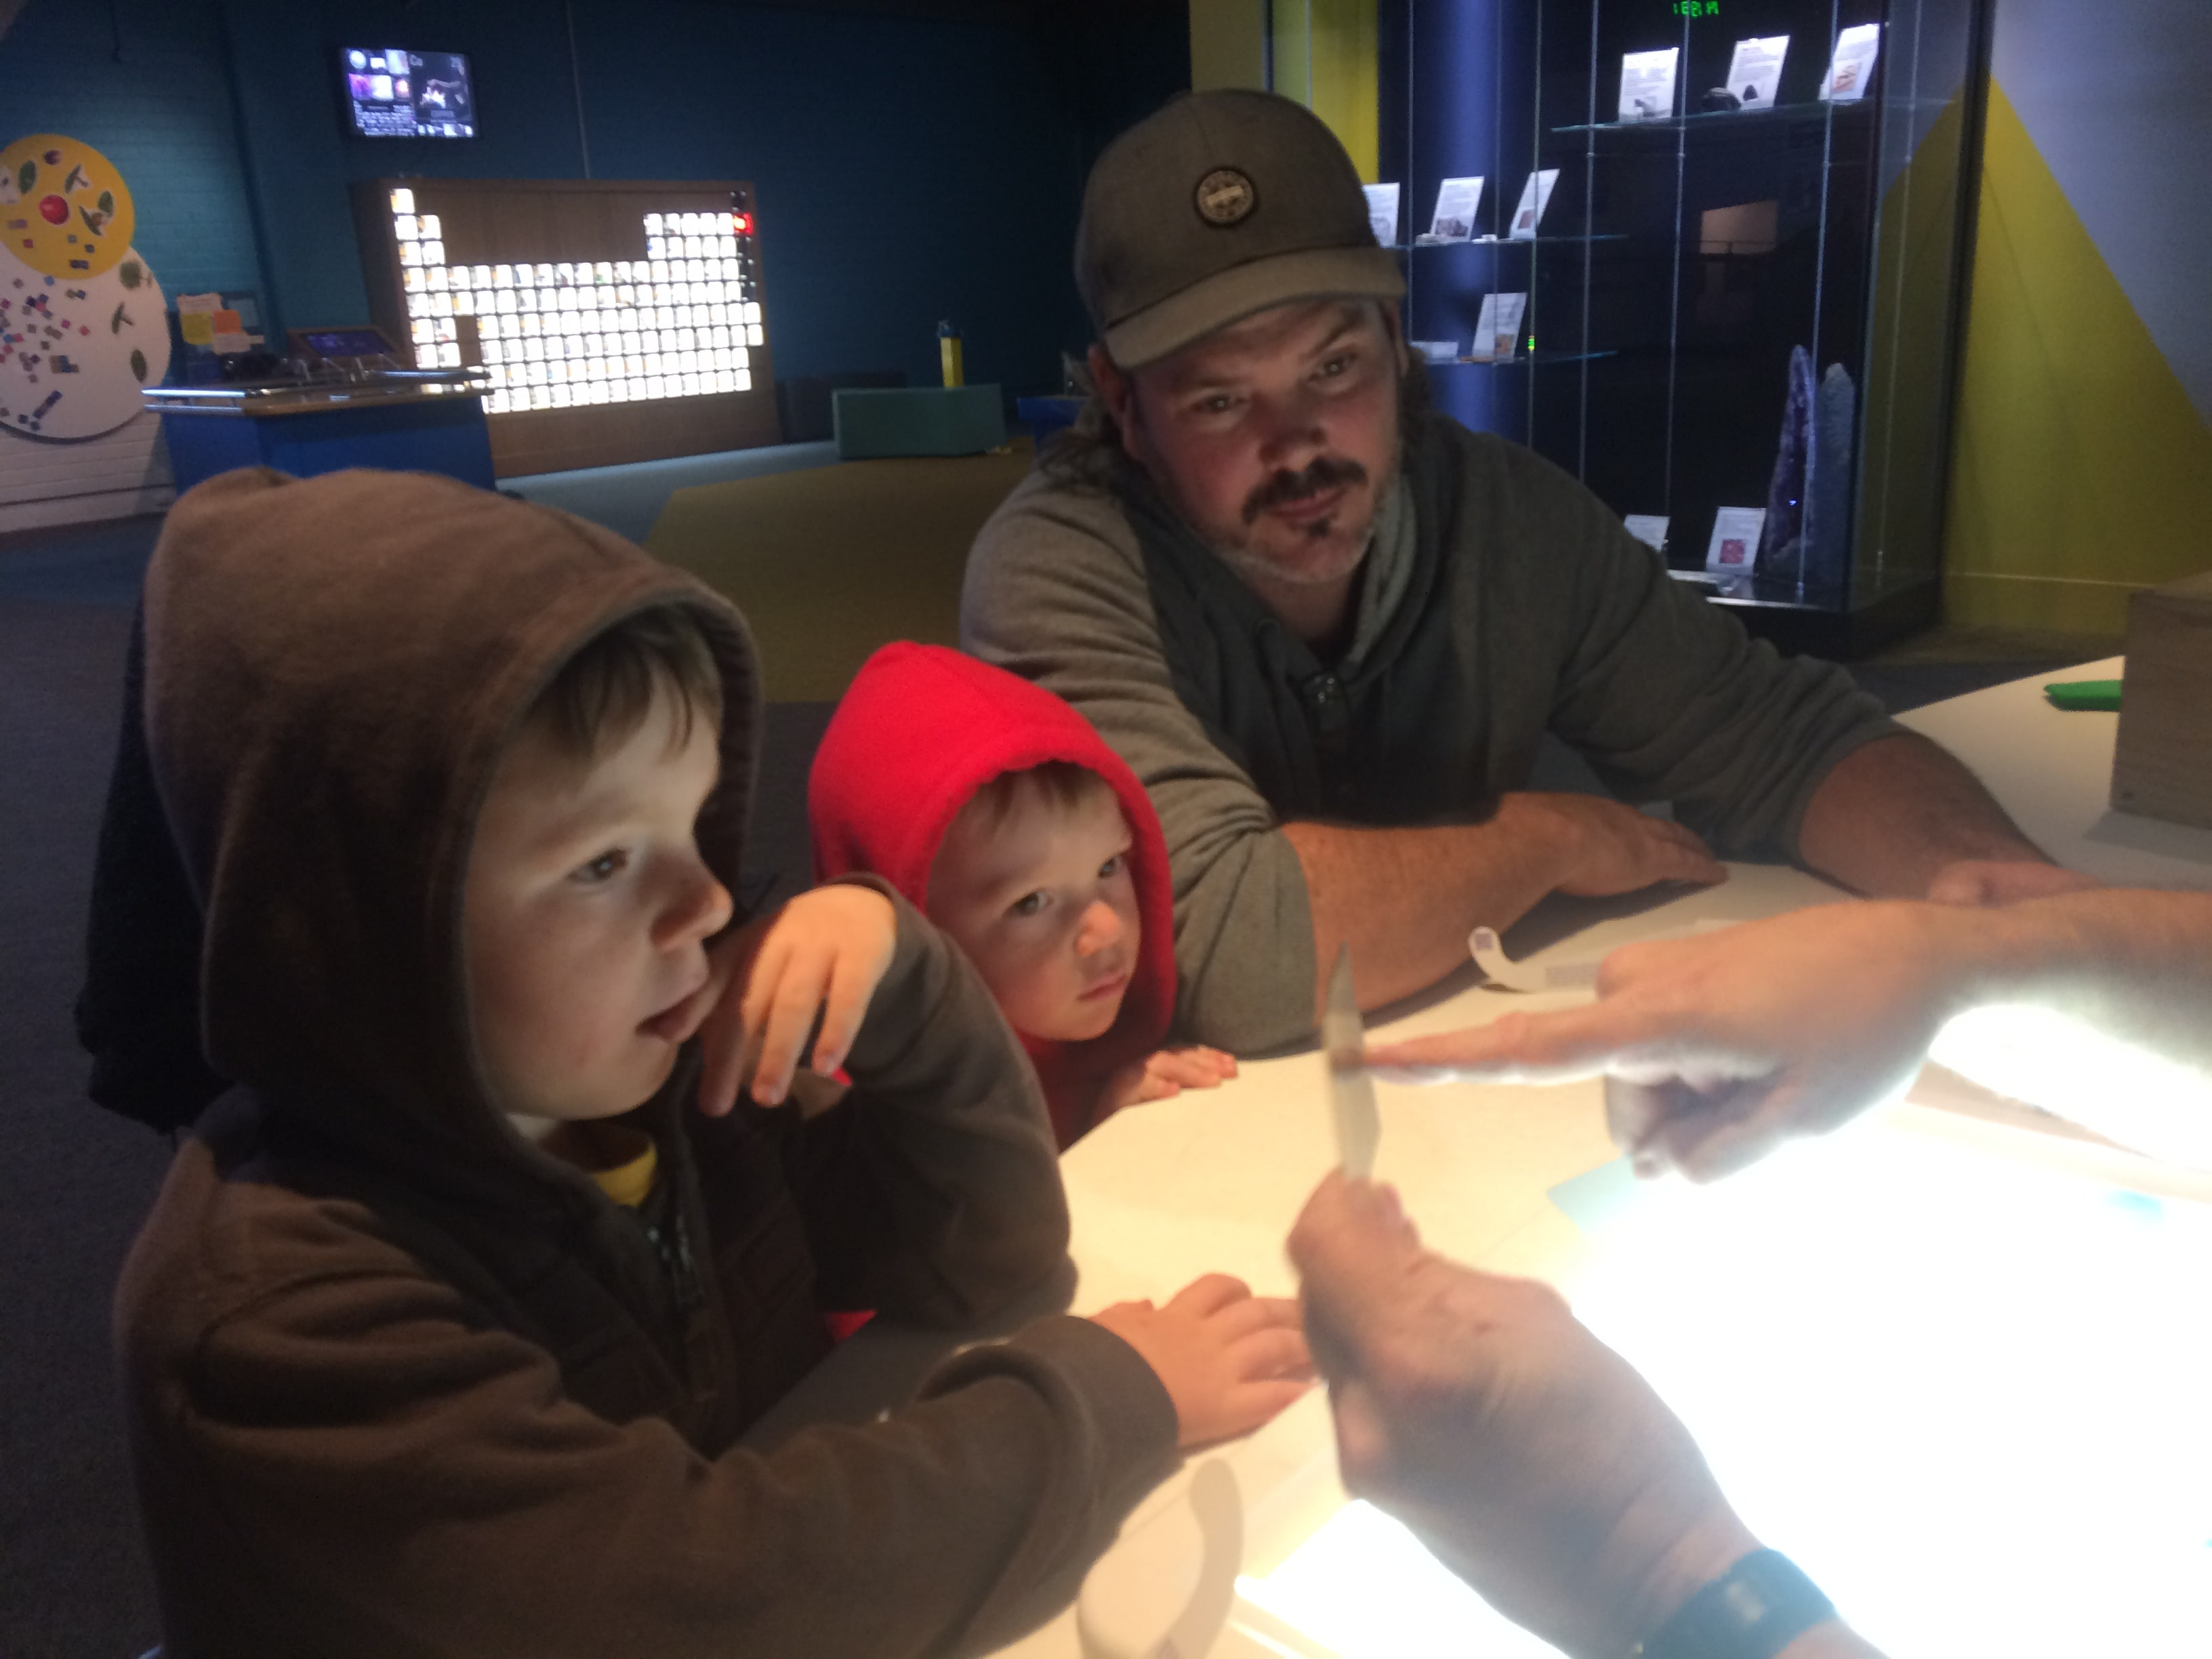 A dad and 2 sons enjoying a science experiment at Questacon in Canberra